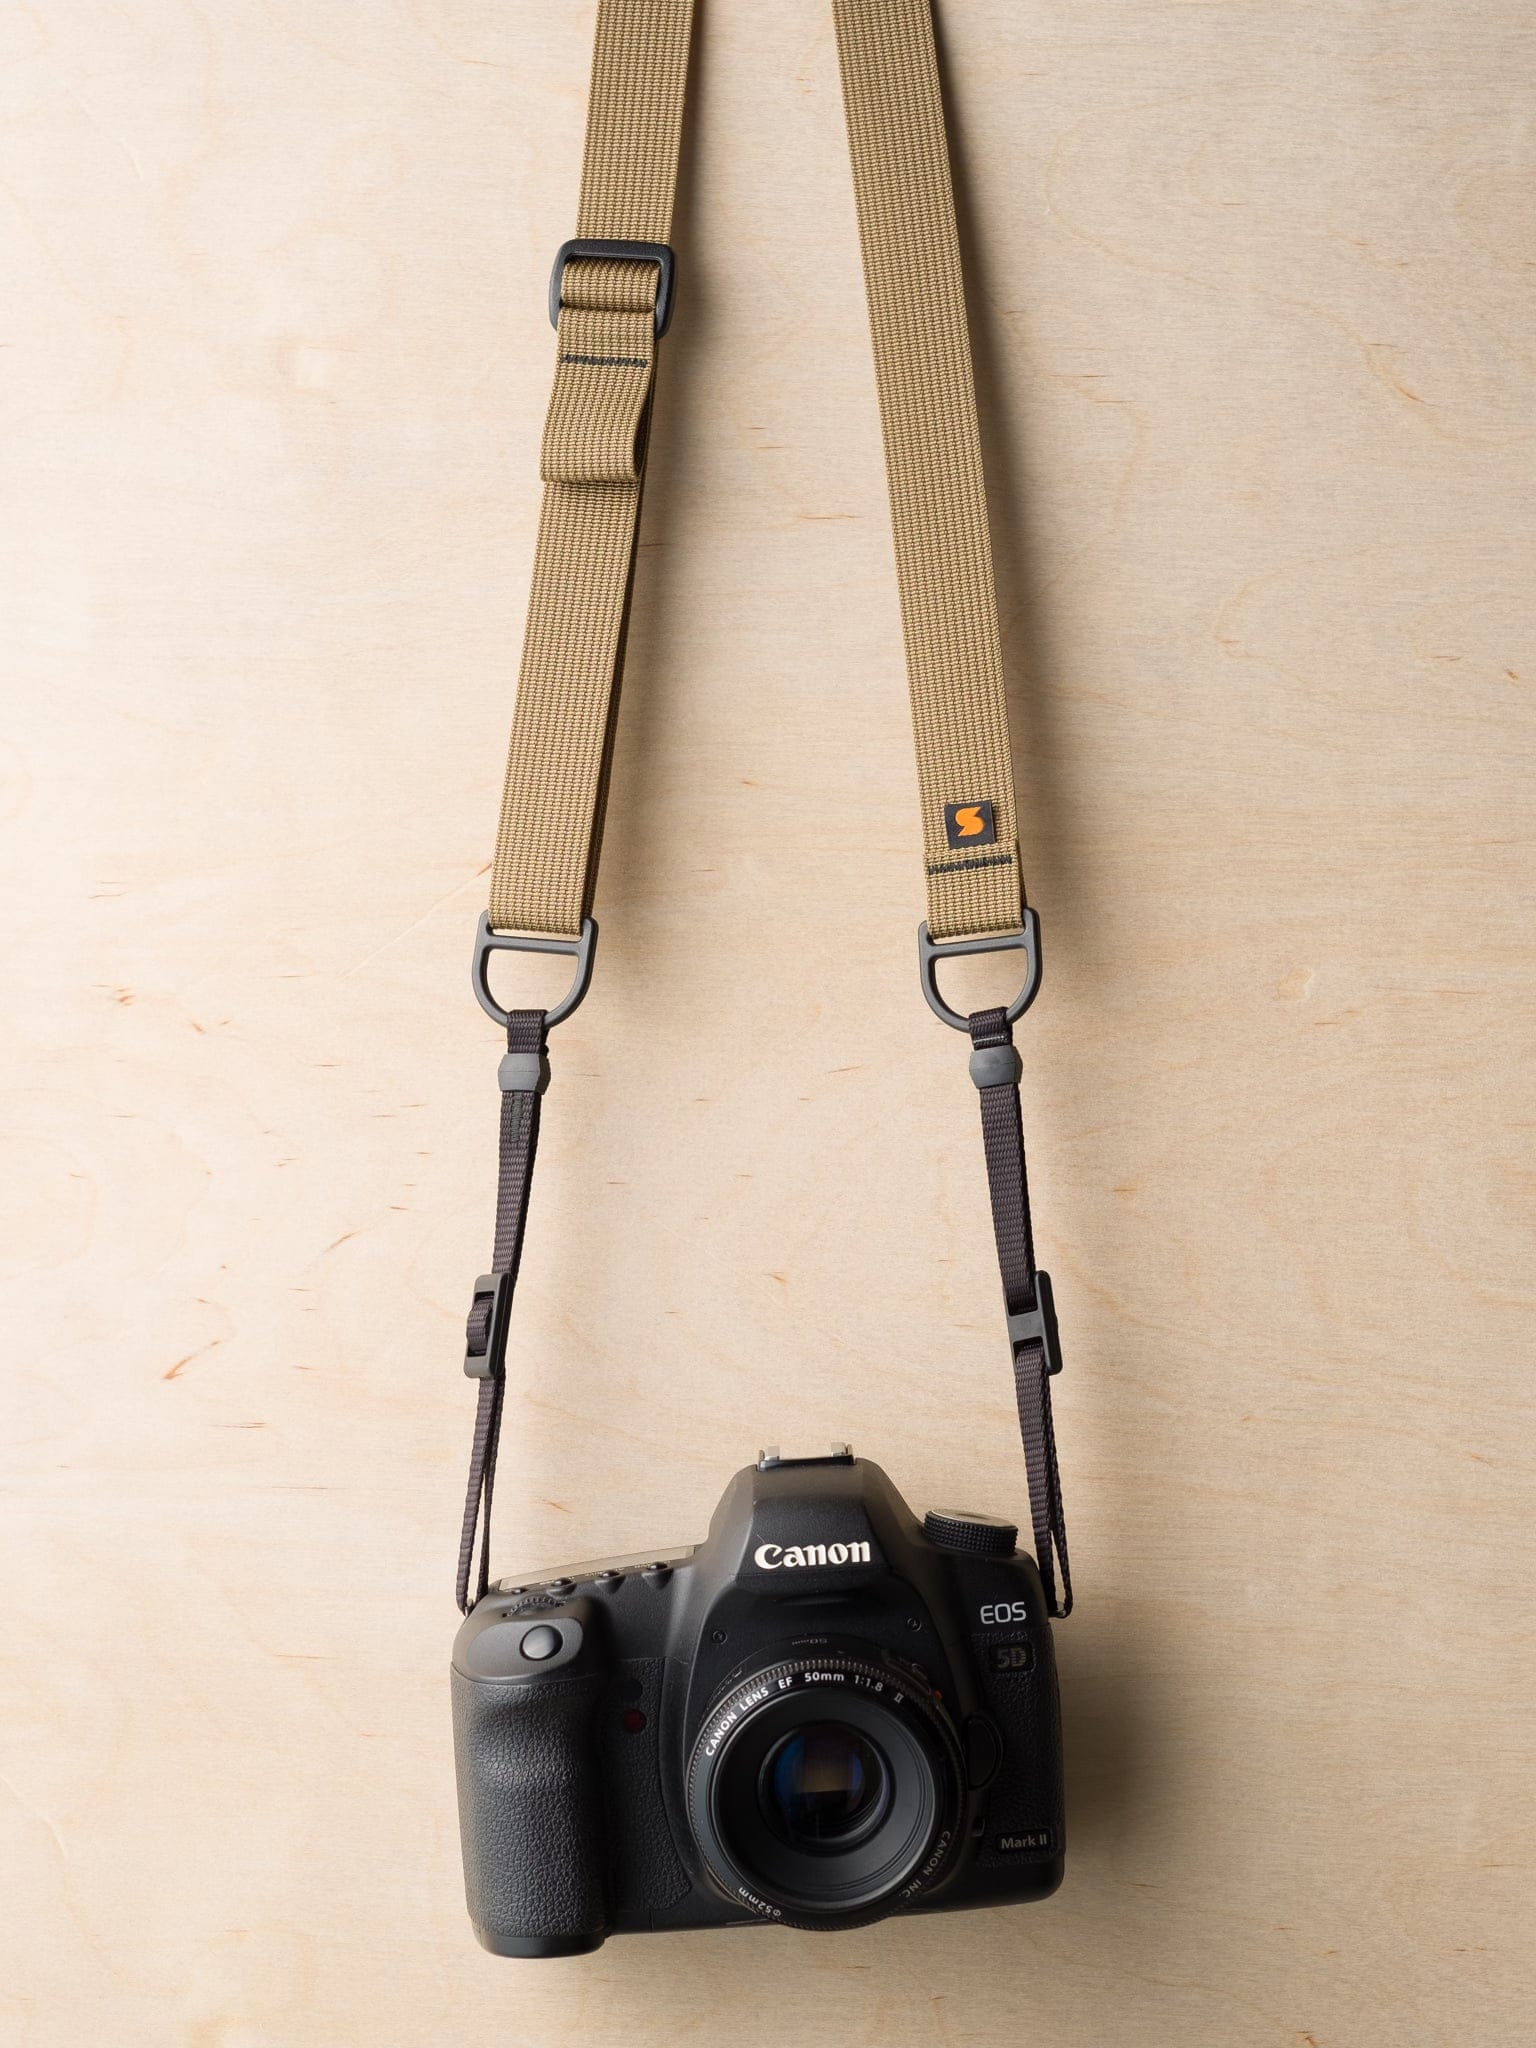 F1 Sling Style Camera Strap on Canon 5D Mk II in Army Khaki